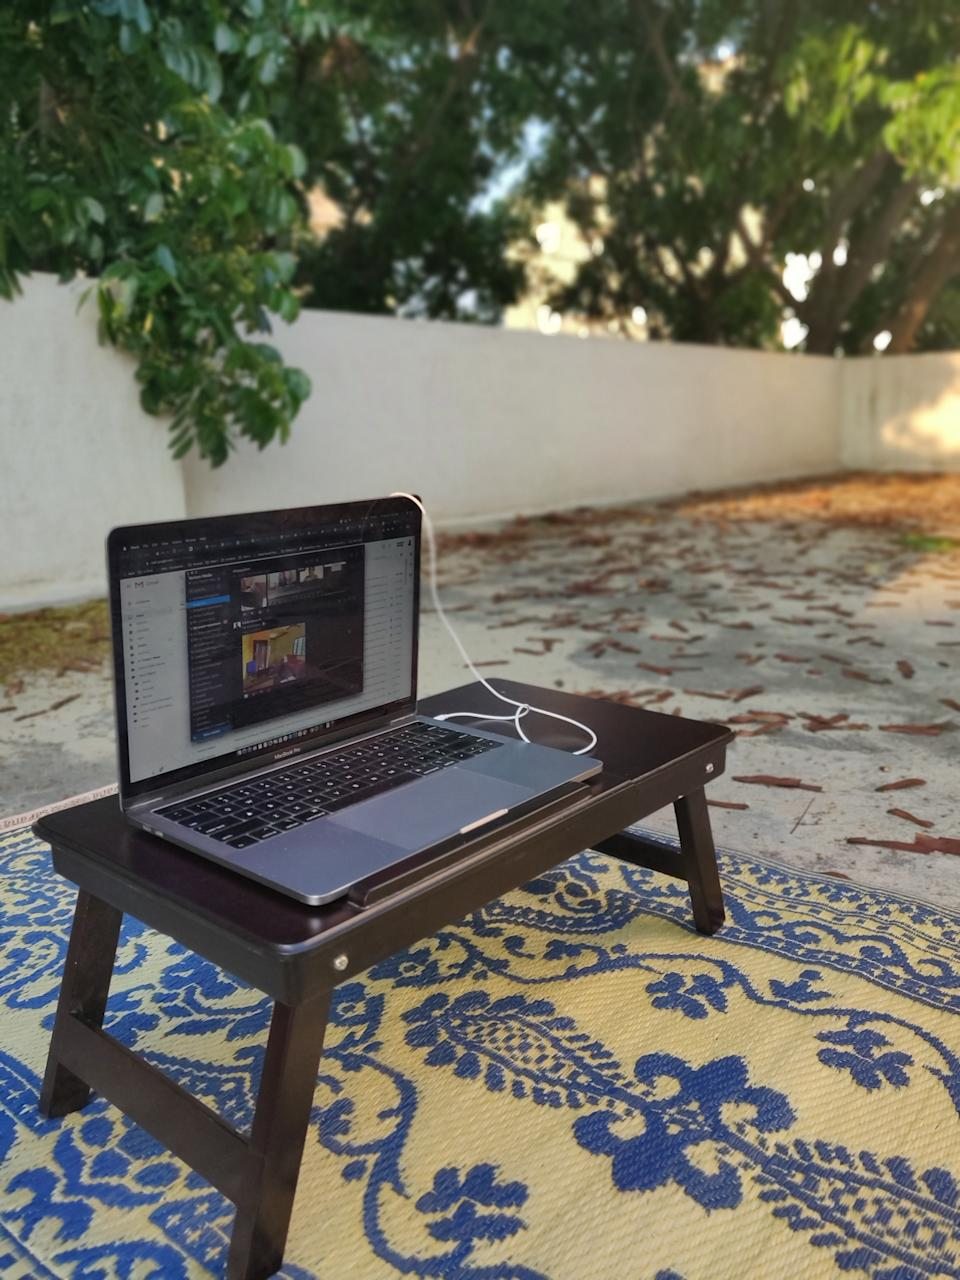 Who knew the terrace could be a great place to work from! All you need is a mat, a table and great wifi! <em>Photo credit: Uday Naresh Telkar</em>